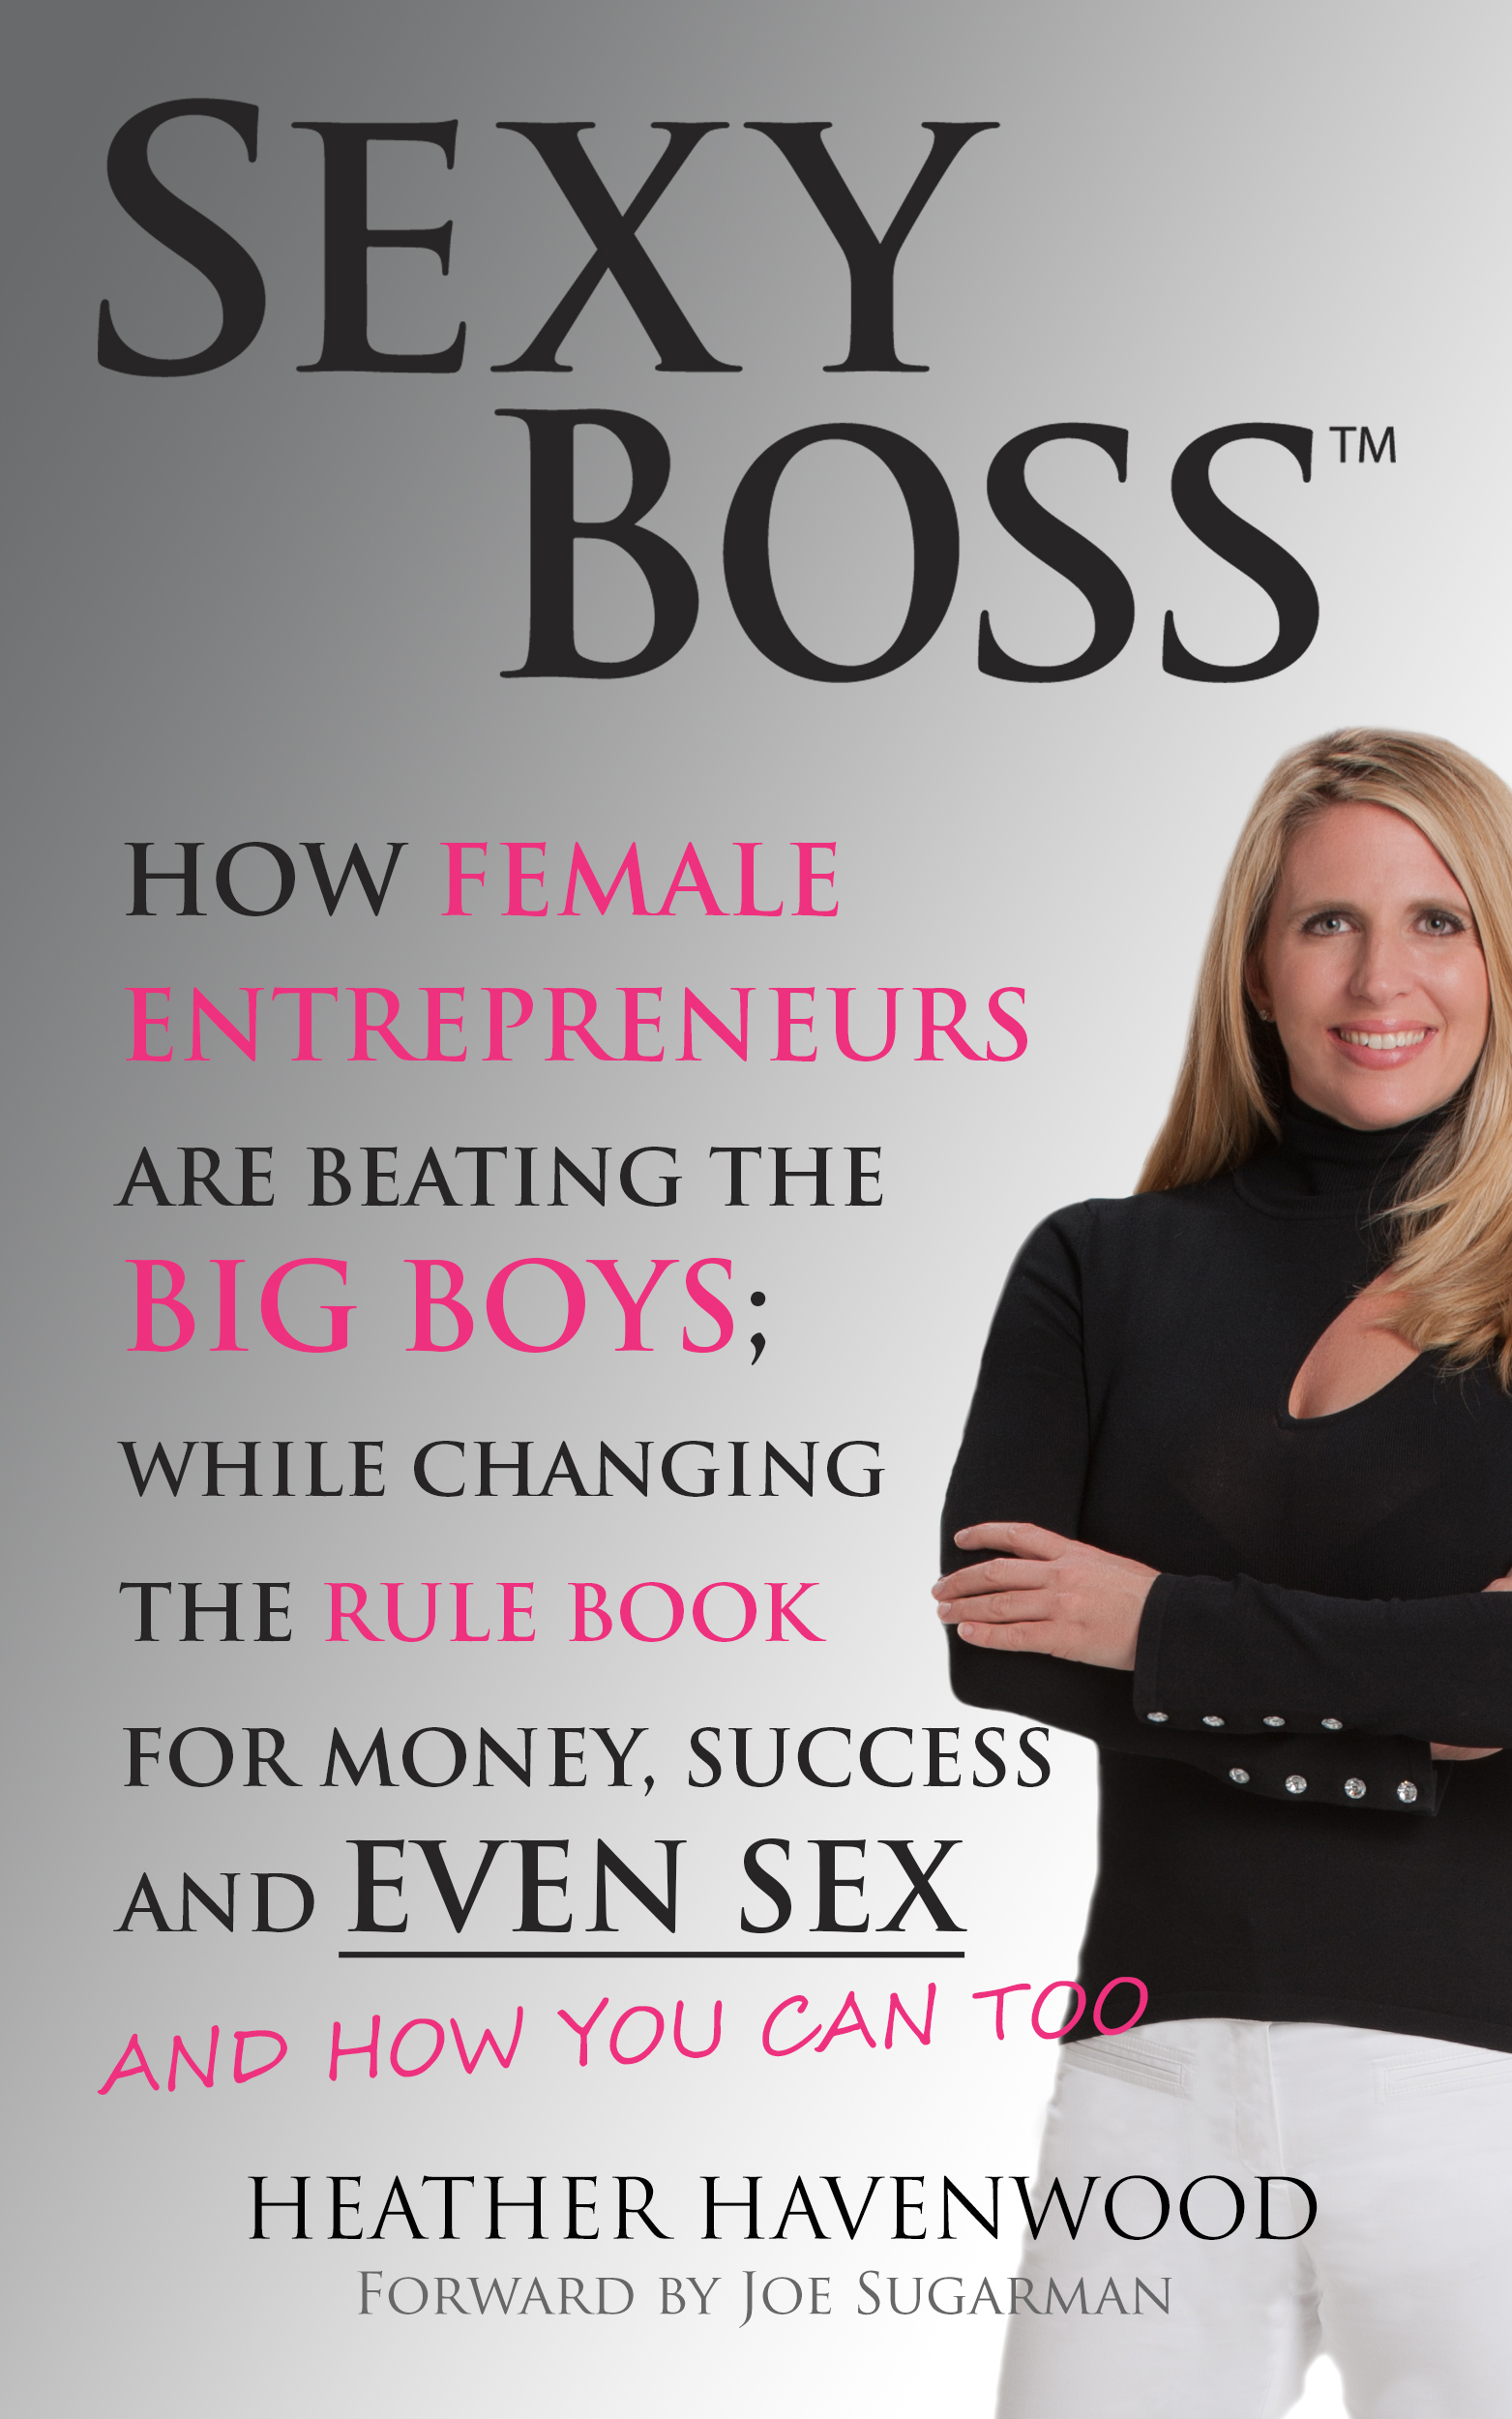 Sexy Boss™ Book Sexy Boss Book Heather Havenwood